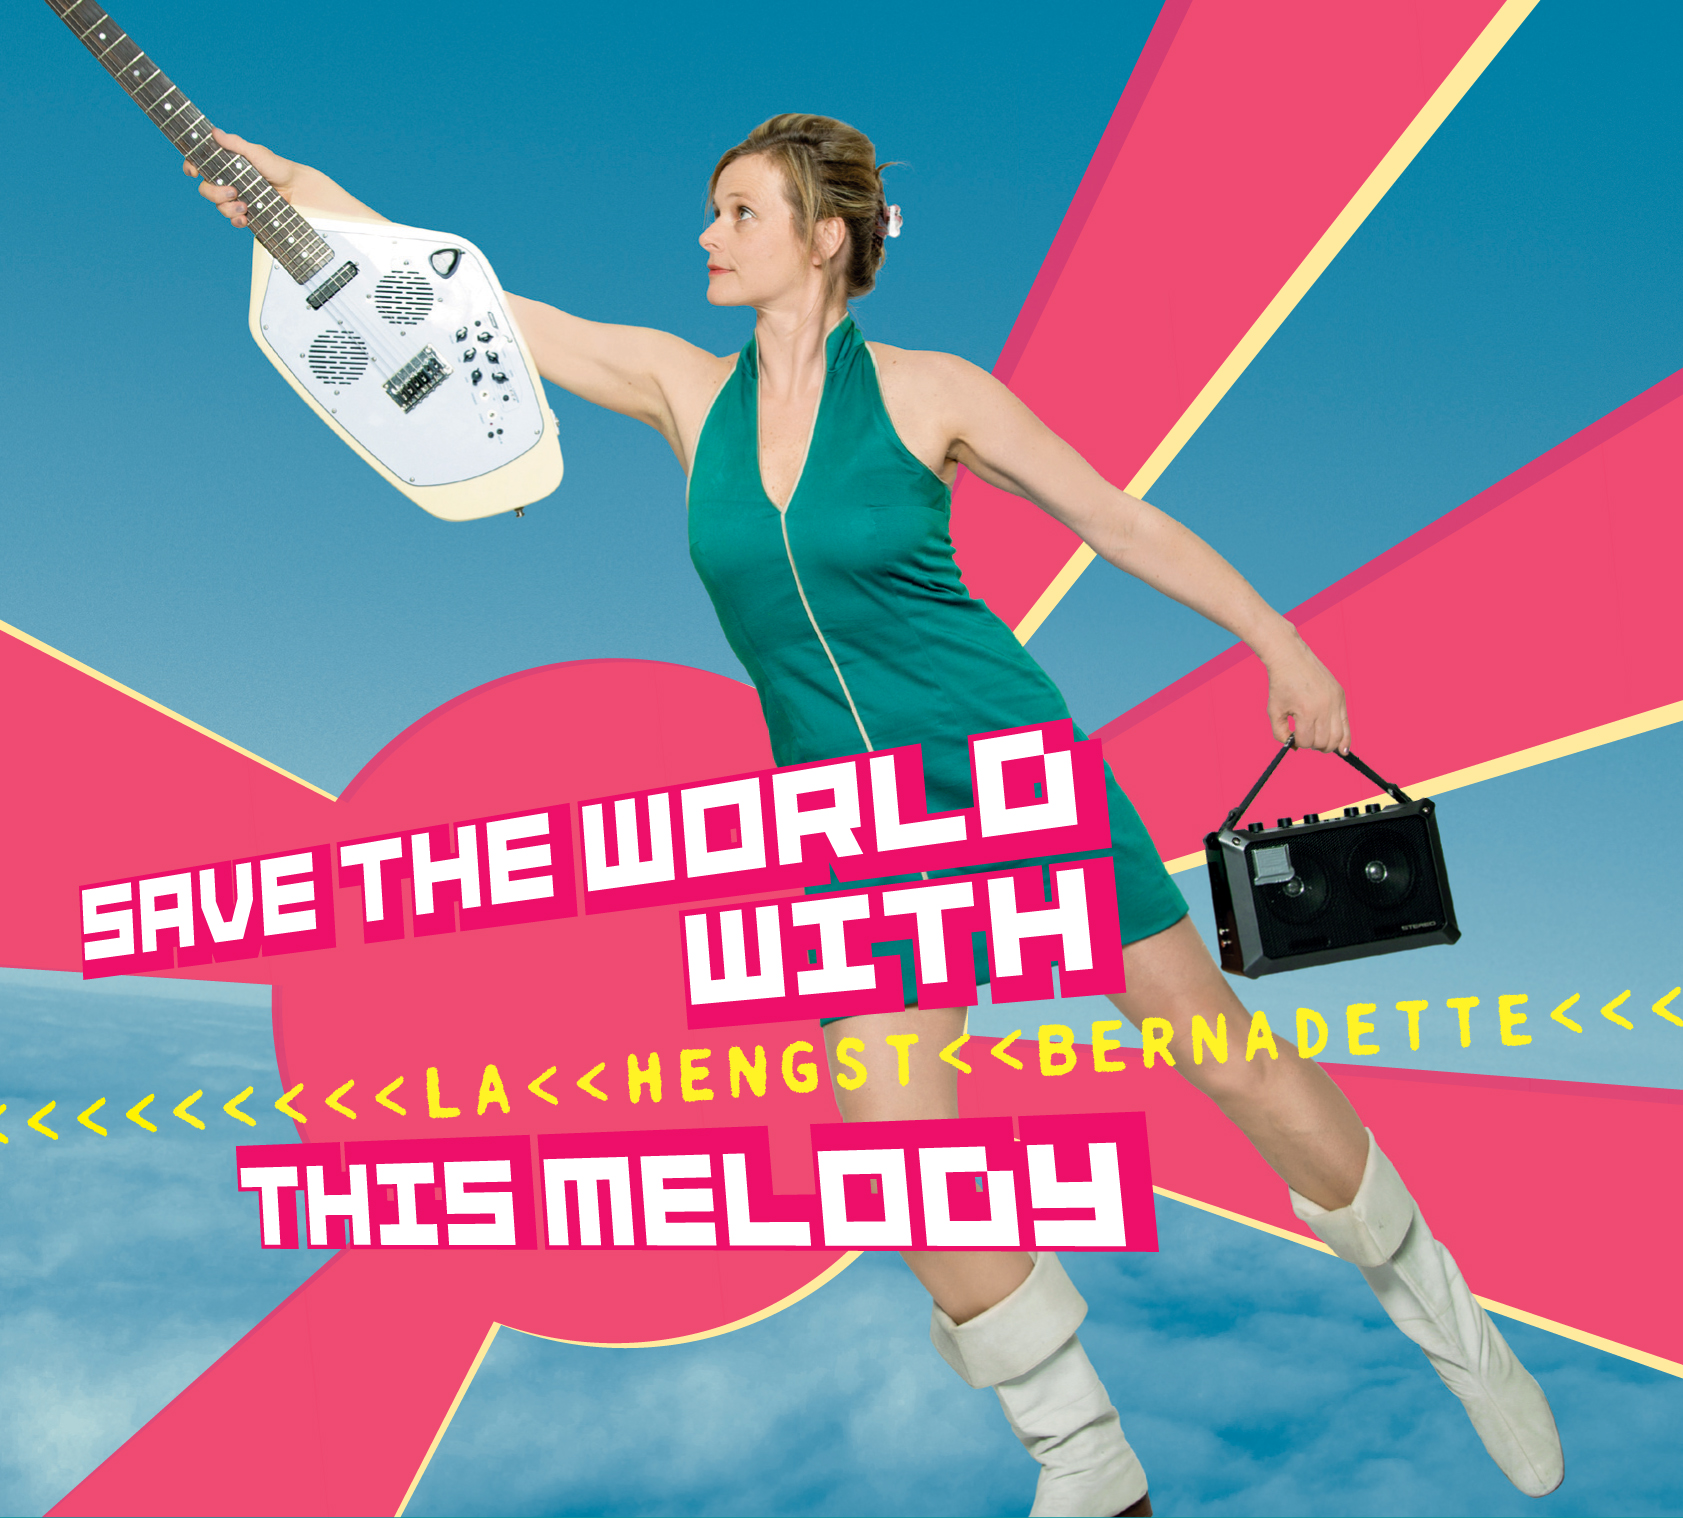 Bernadette La Hengst - Save The World With This Melody 1